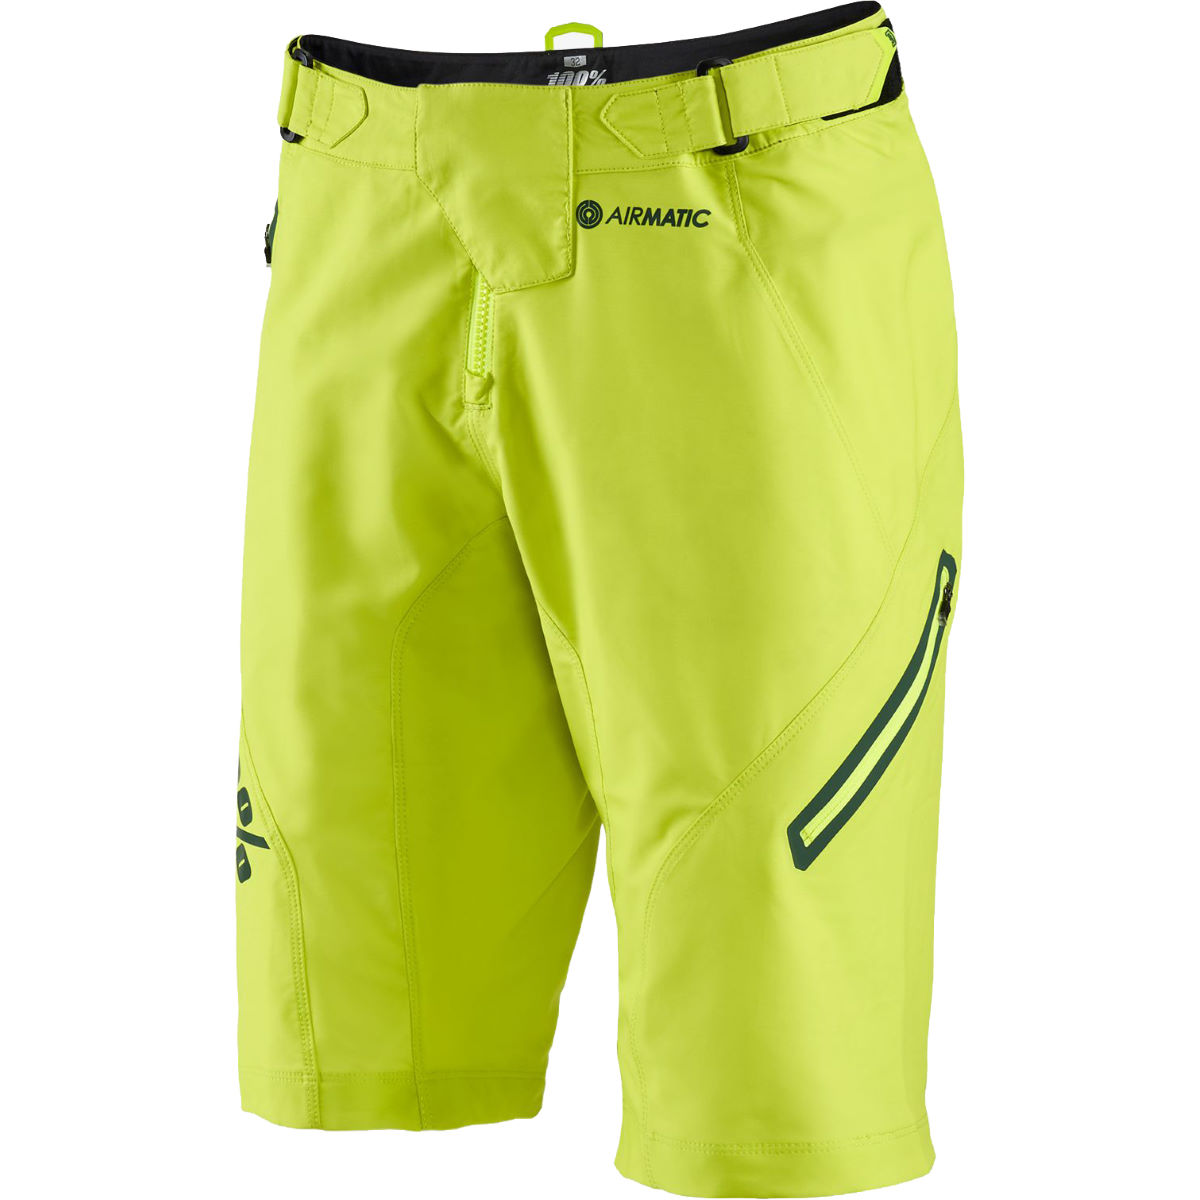 Short 100% Airmatic LE - 36 Lime Shorts amples